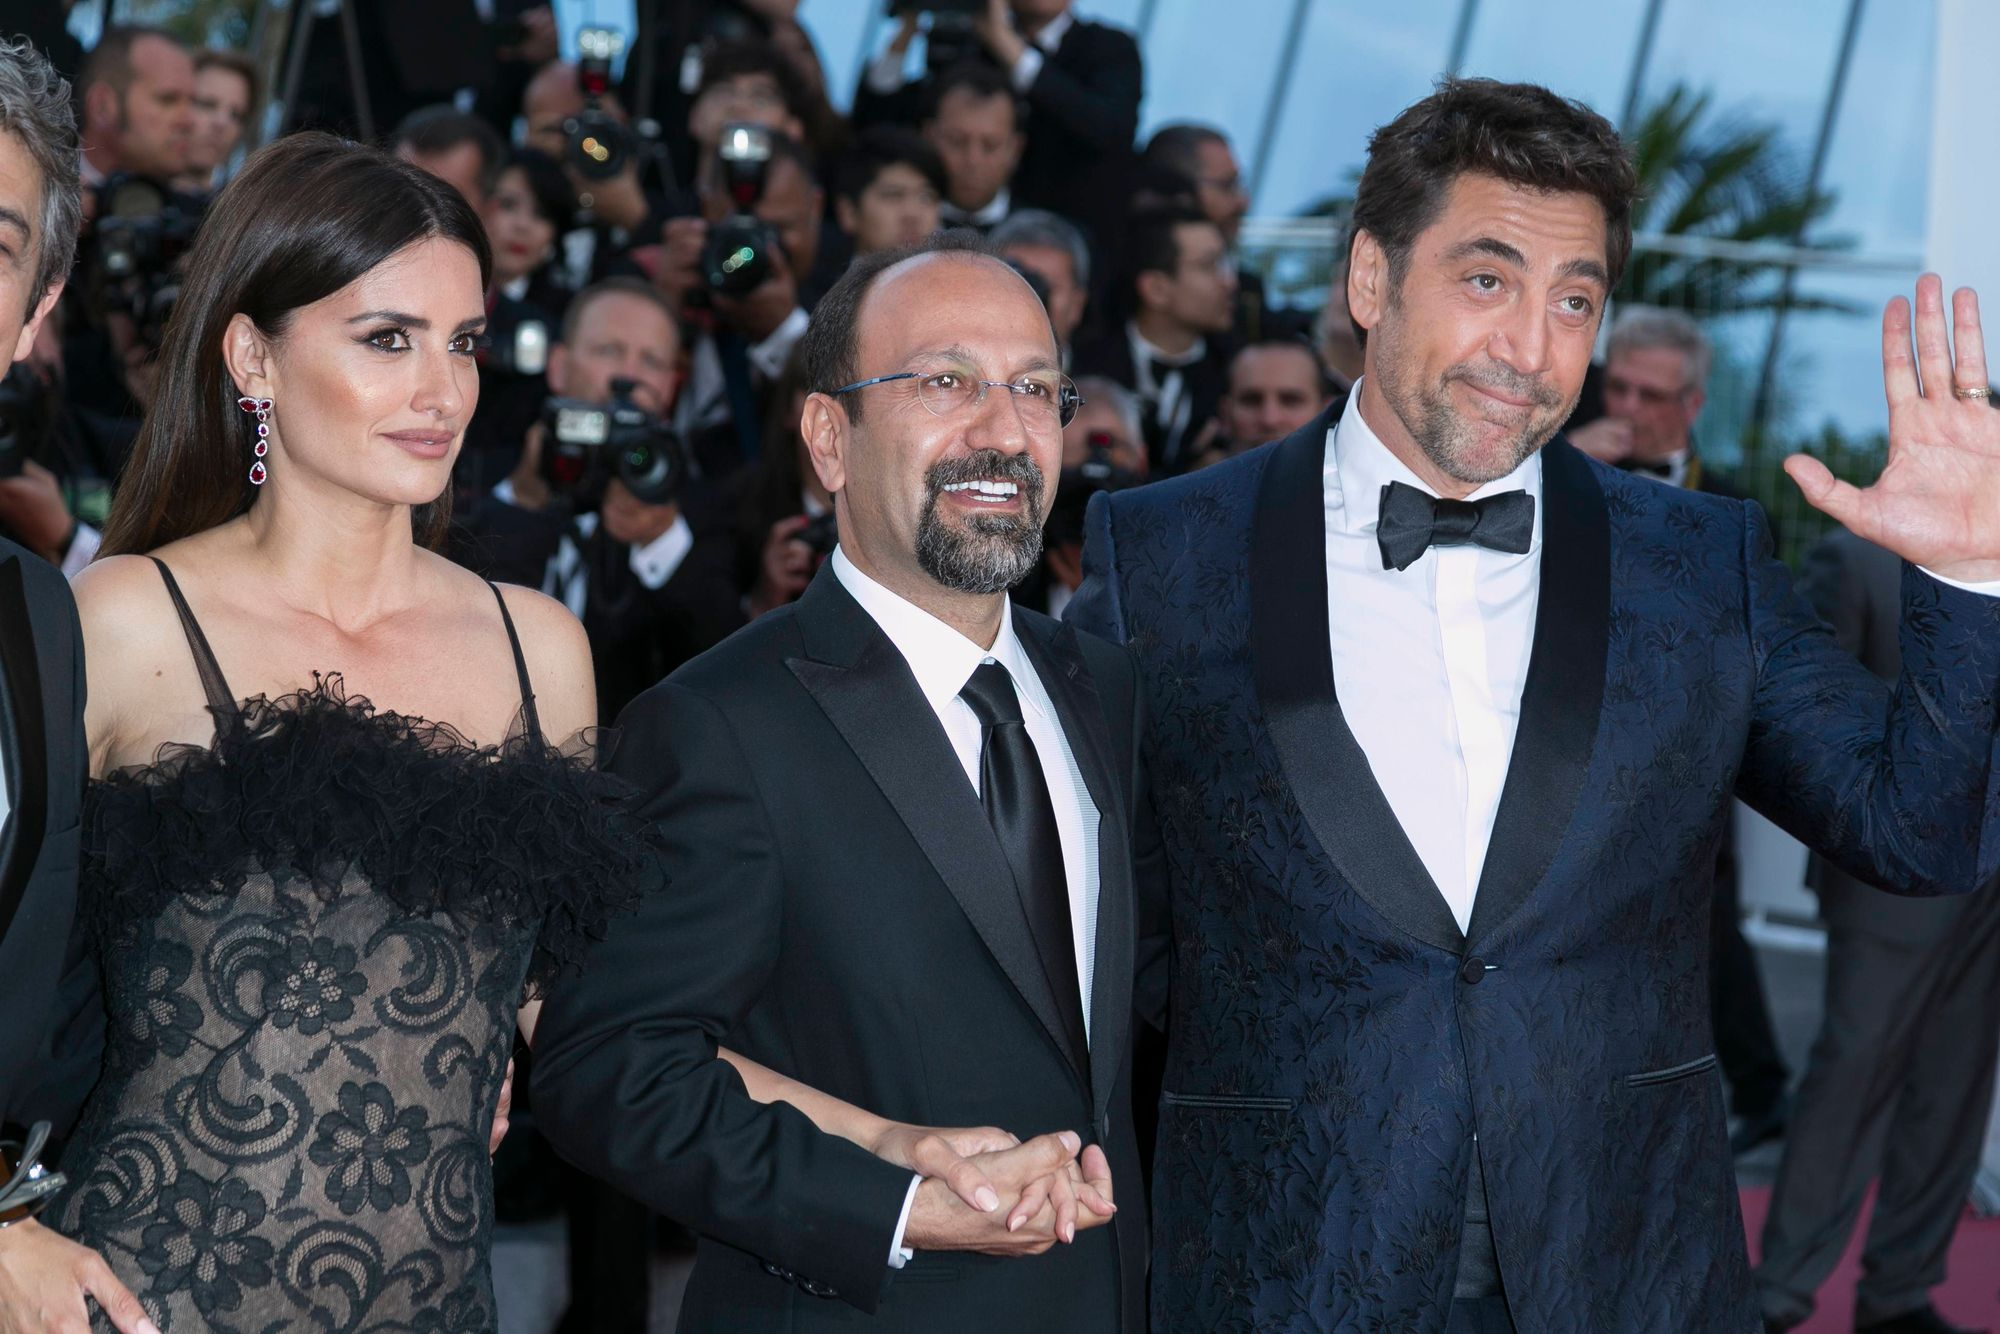 "Asghar Farhadi, entouré de Penelope Cruz et Javier Bardem, pour la projection d'""Everybody Knows"" à Cannes."